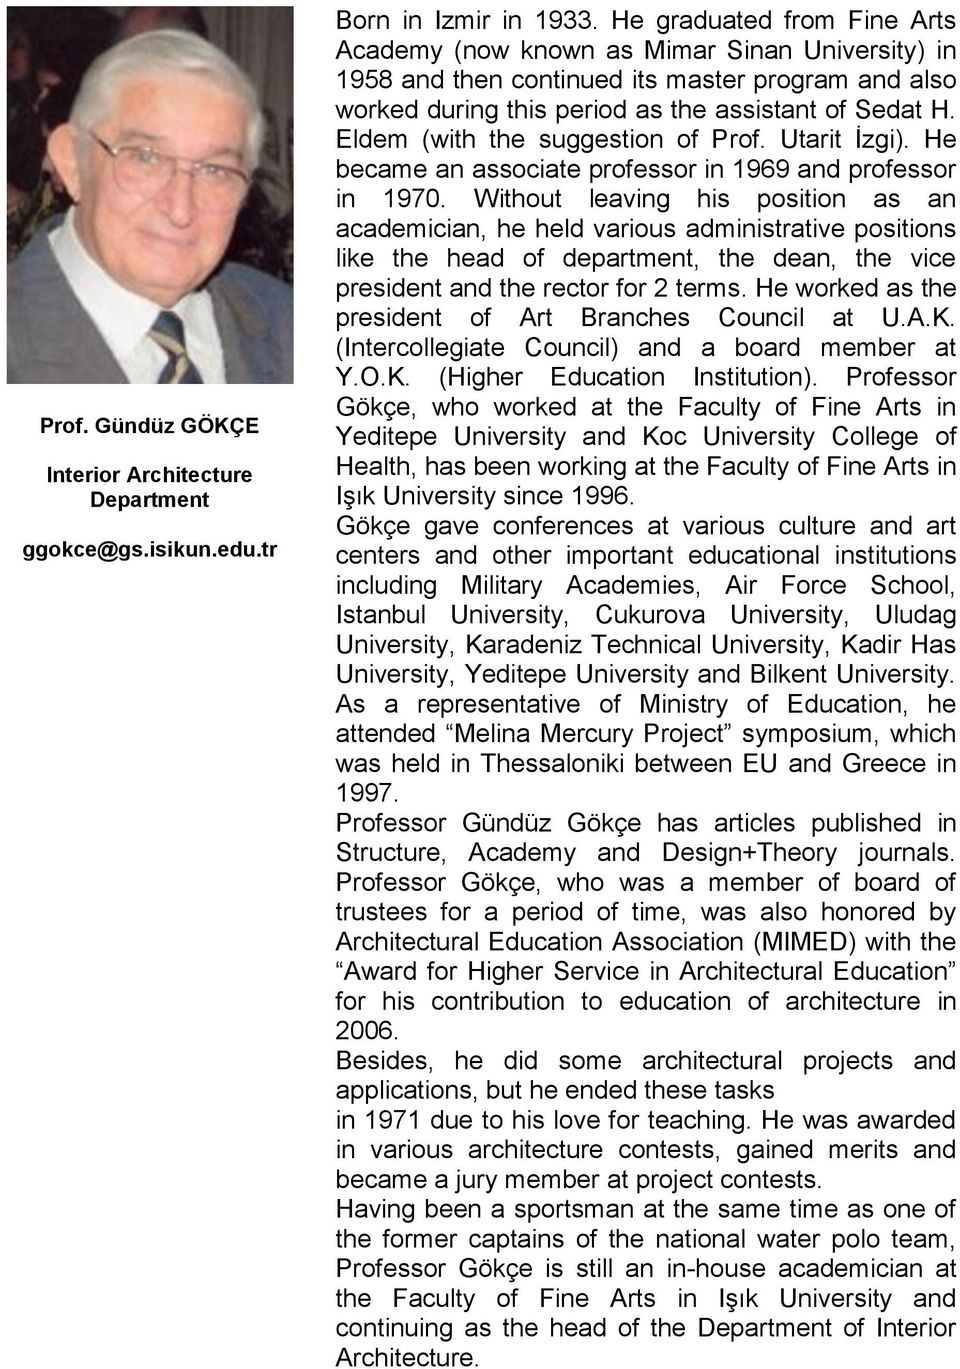 Eldem (with the suggestion of Prof. Utarit İzgi). He became an associate professor in 1969 and professor in 1970.